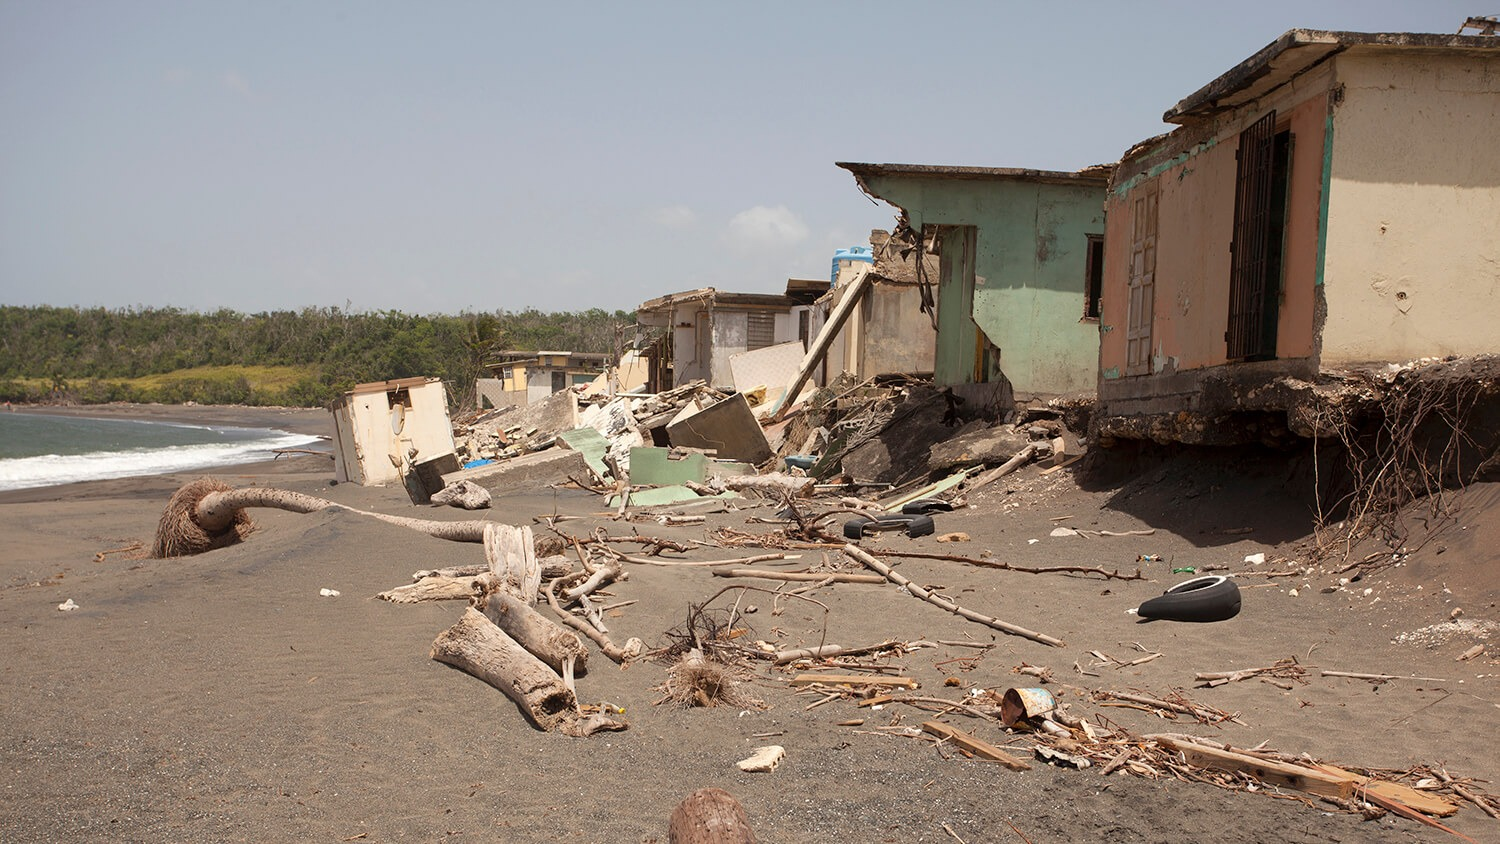 Destroyed homes on a beach